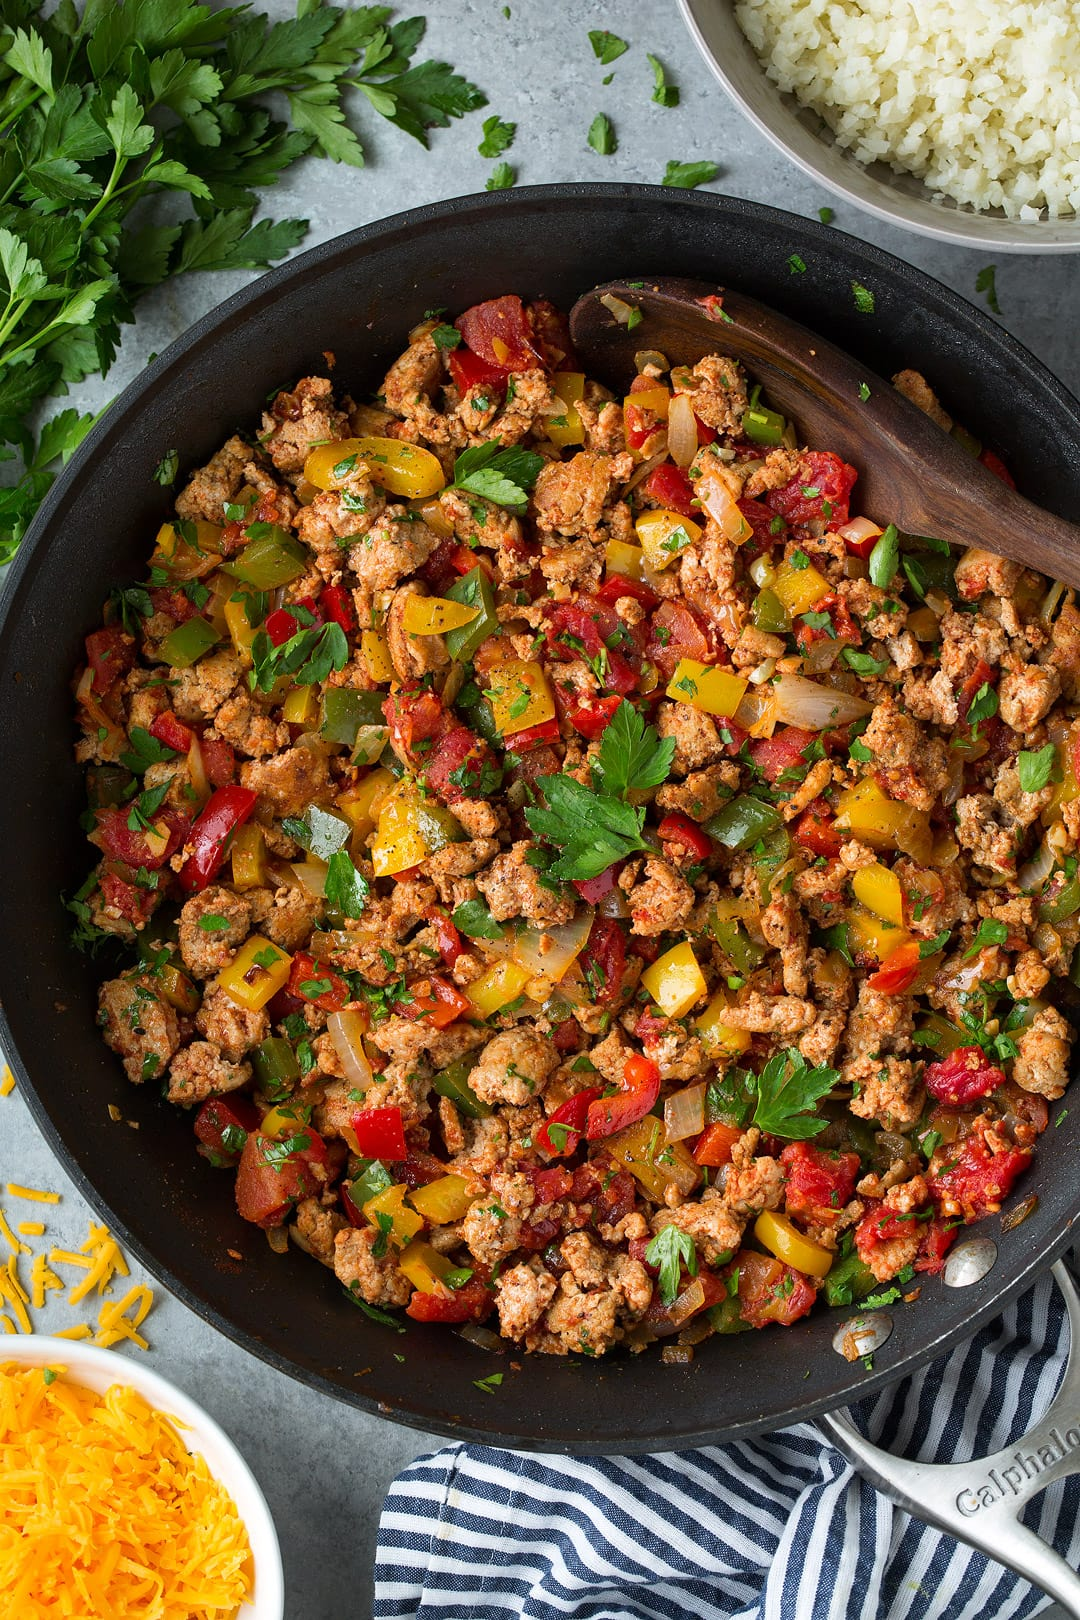 Unstuffed Pepper mixture of ground turkey, peppers and parsley shown here in a dark skillet on a grey surface